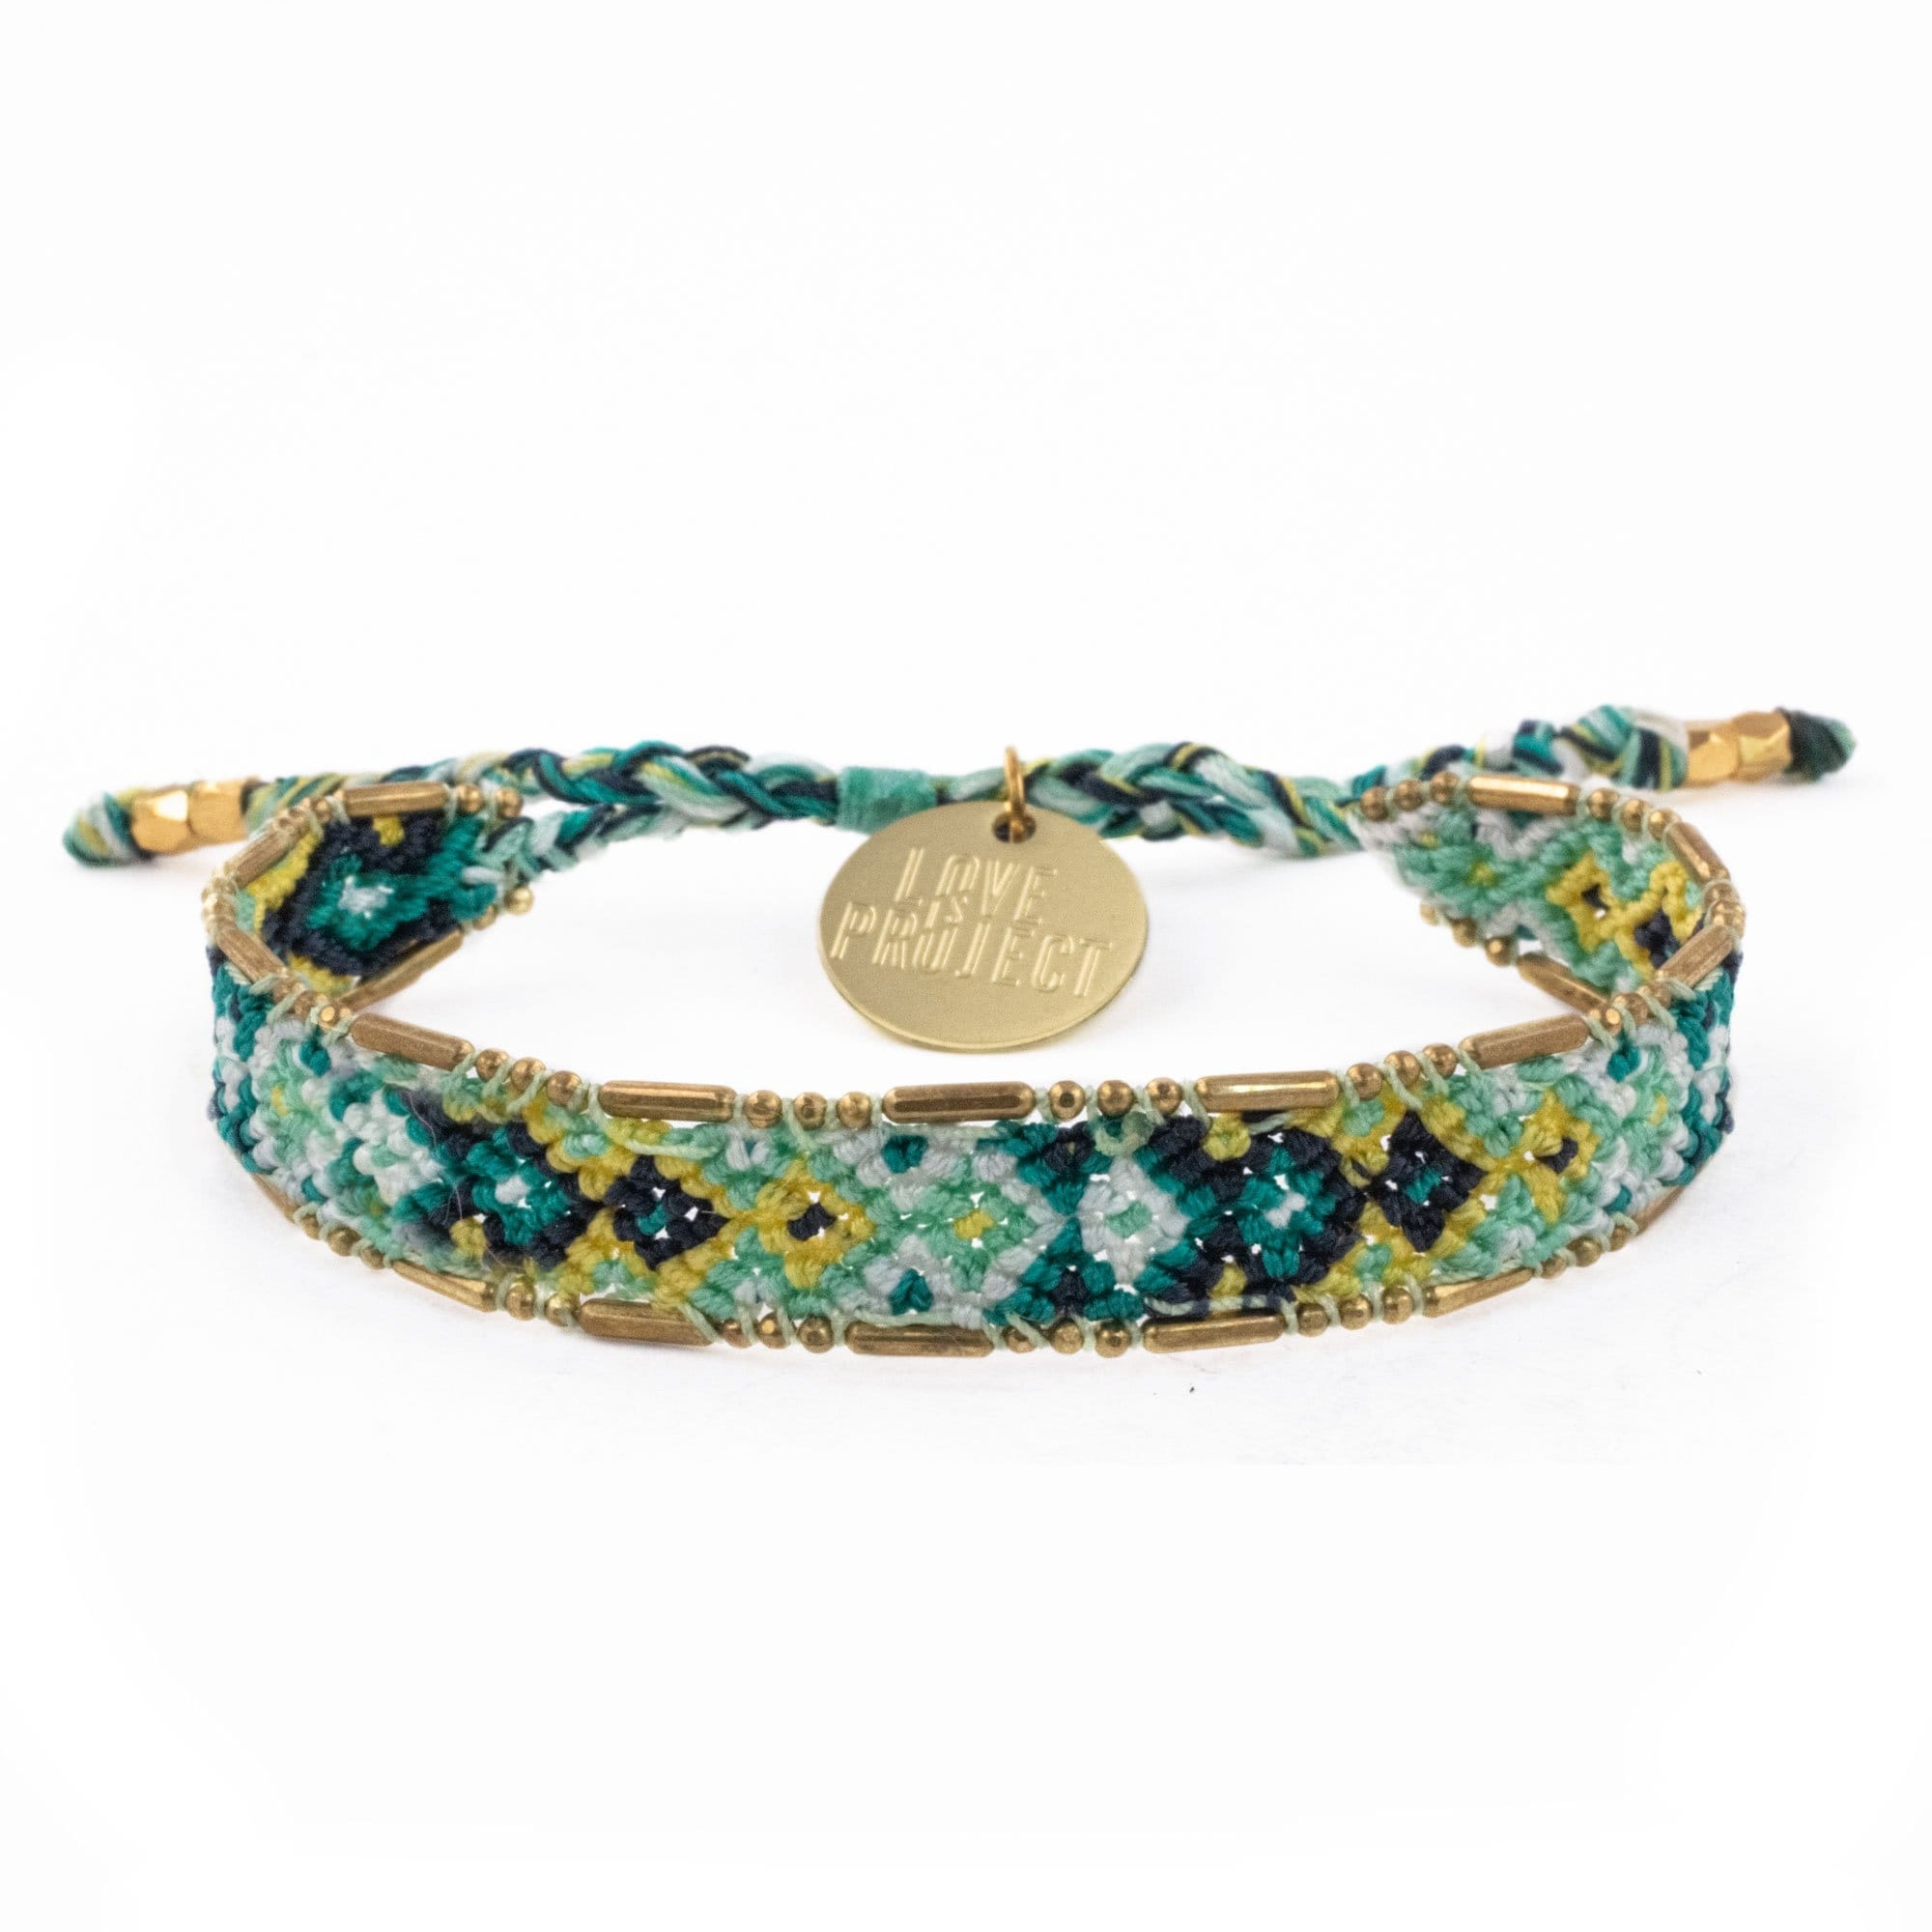 Bali Friendship Bracelet - Spark Light